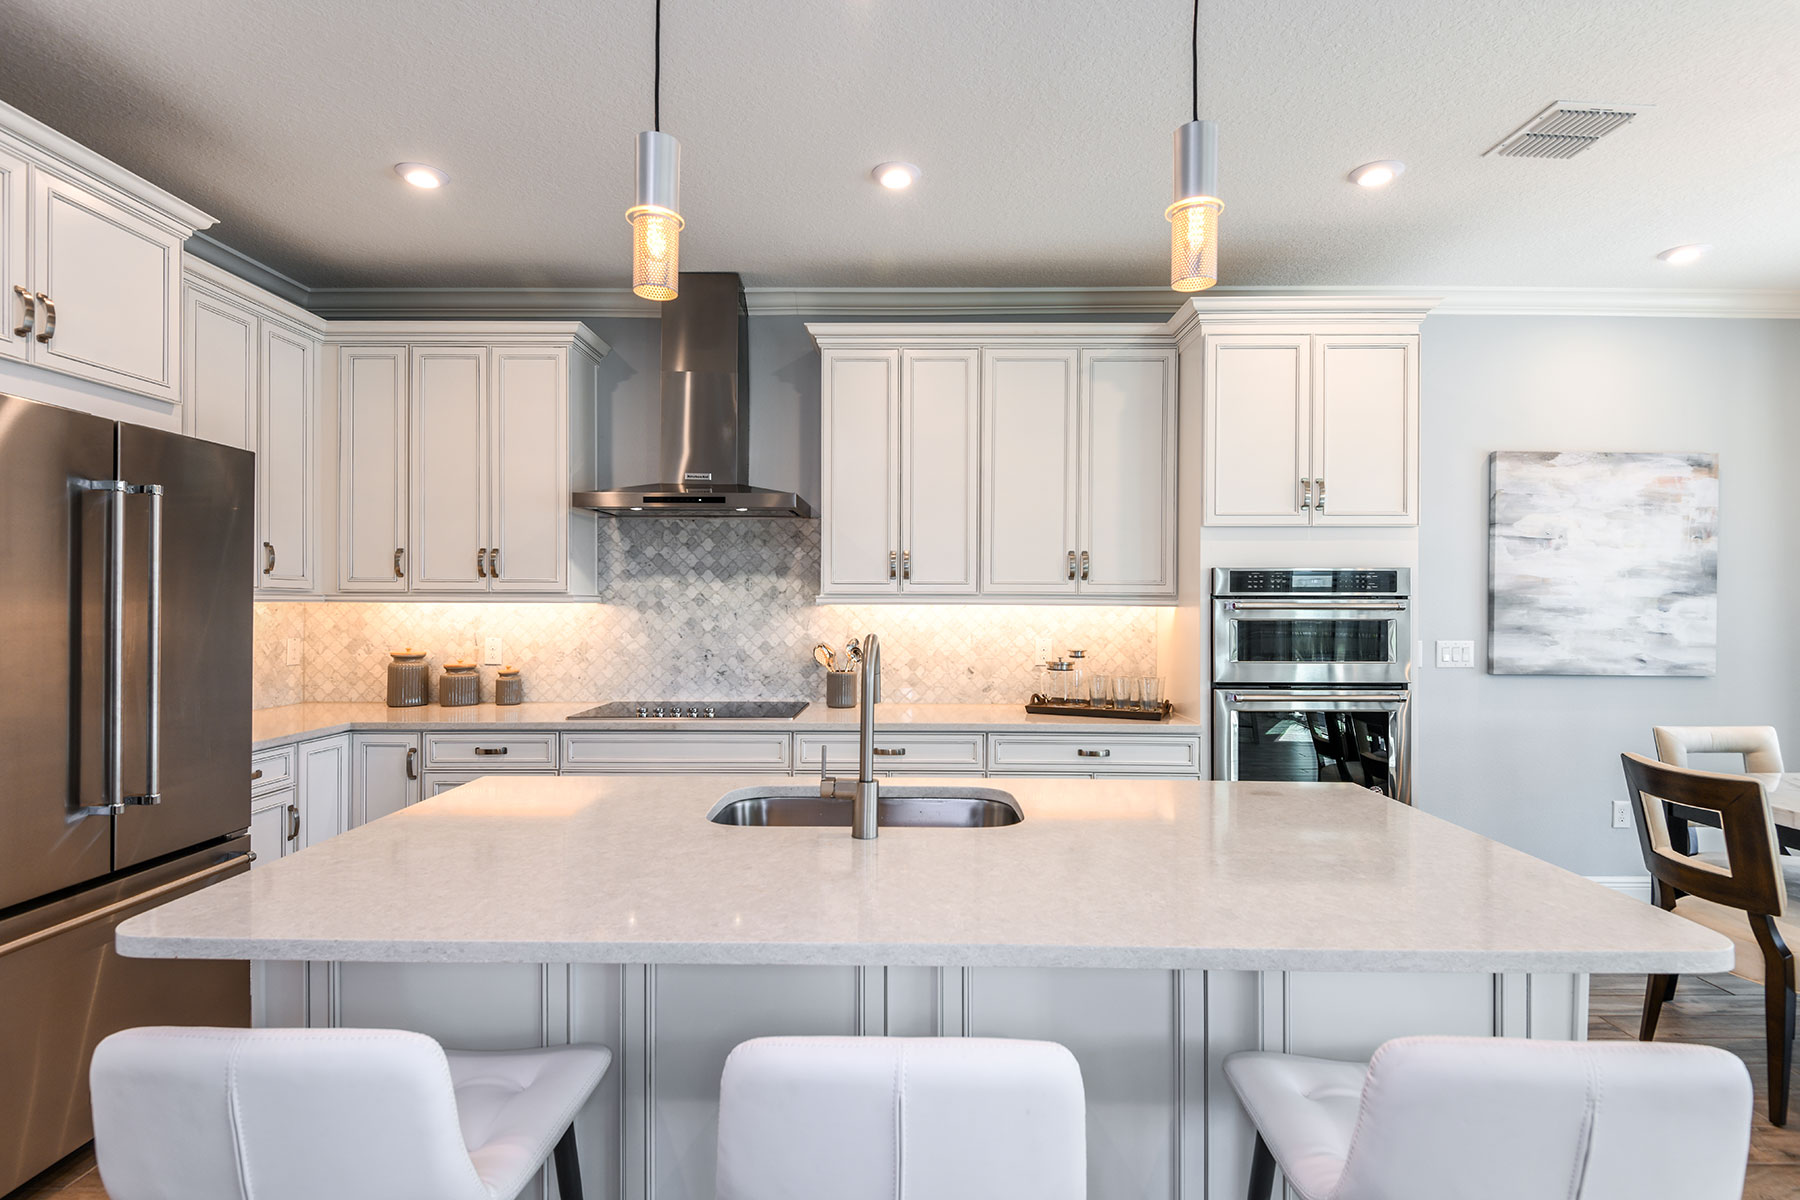 Myrtle Plan Kitchen at Parkview at Long Lake Ranch in Lutz Florida by Mattamy Homes